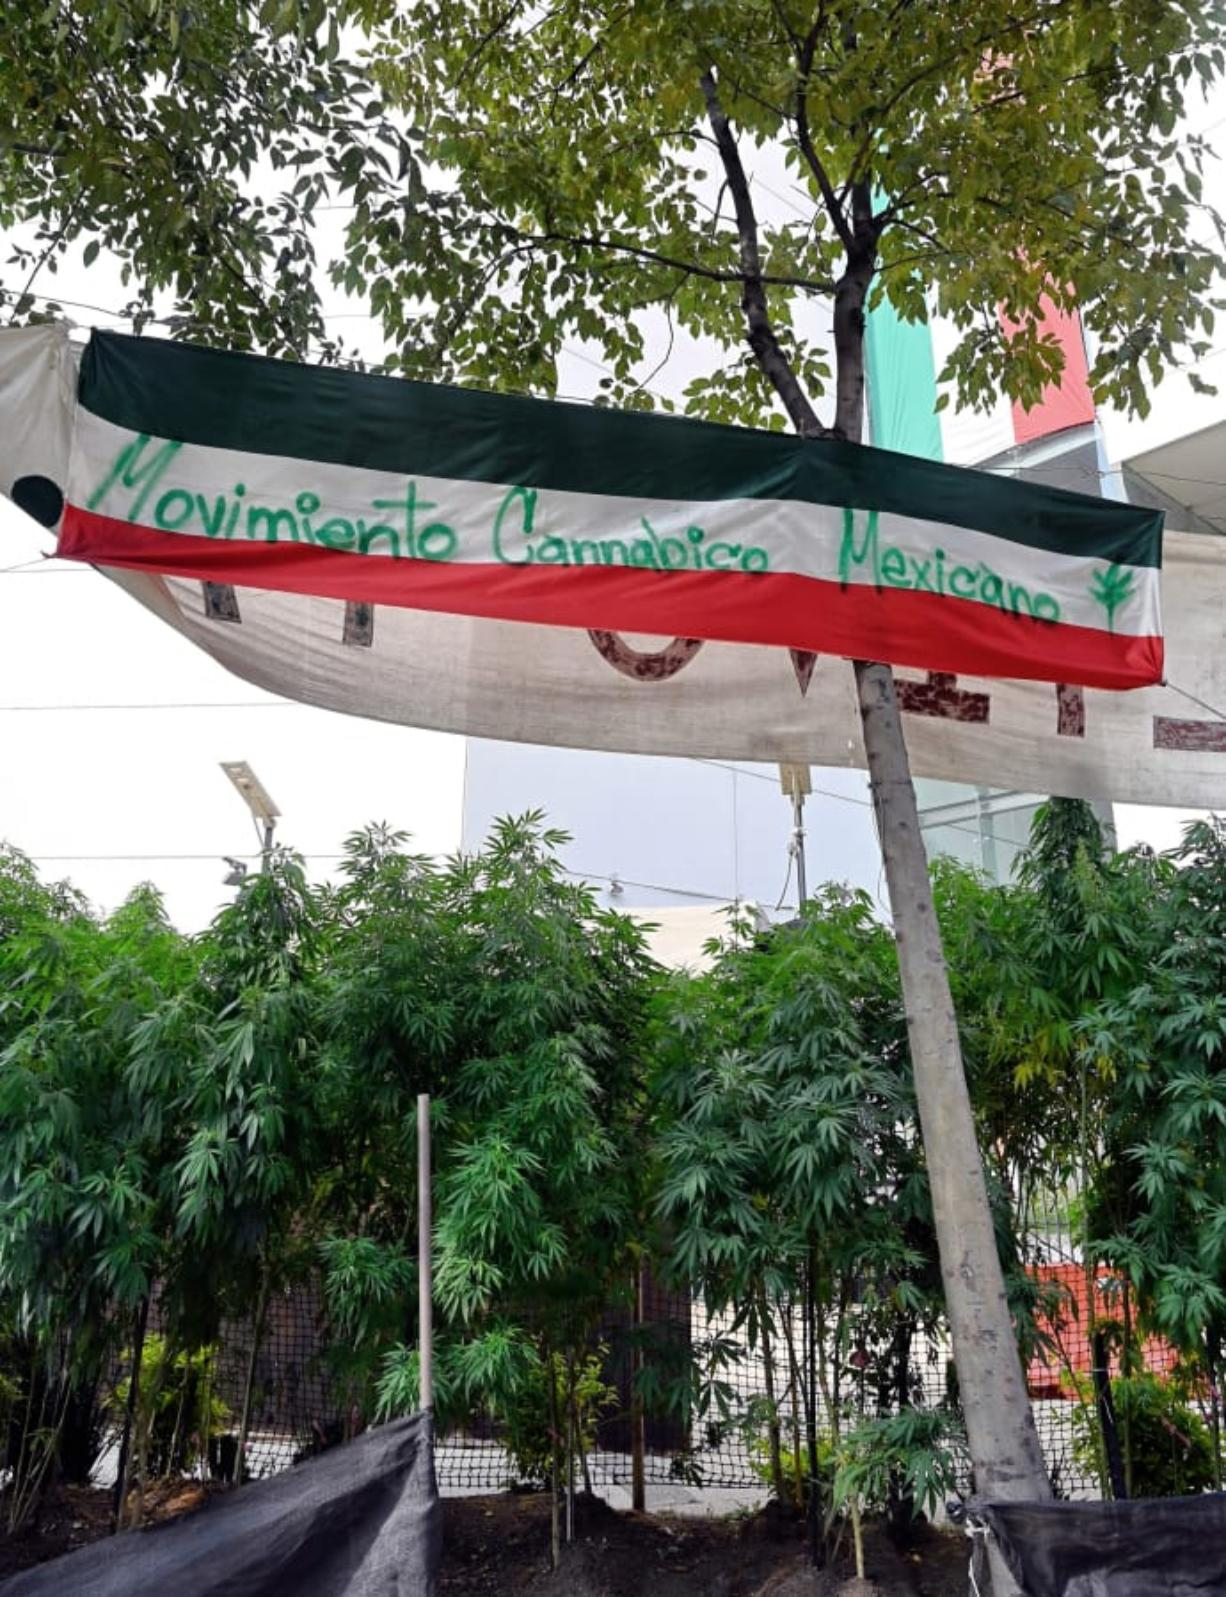 This file photo shows a view of a cannabis pantation with a flag reading Mexican Cannabic Movement outside the Senate's building in Mexico City on September 30, 2020. Mexico's marijuana revolution is on display steps from the nation's Senate, where for the last nine months activists have maintained a fragrant cannabis garden.